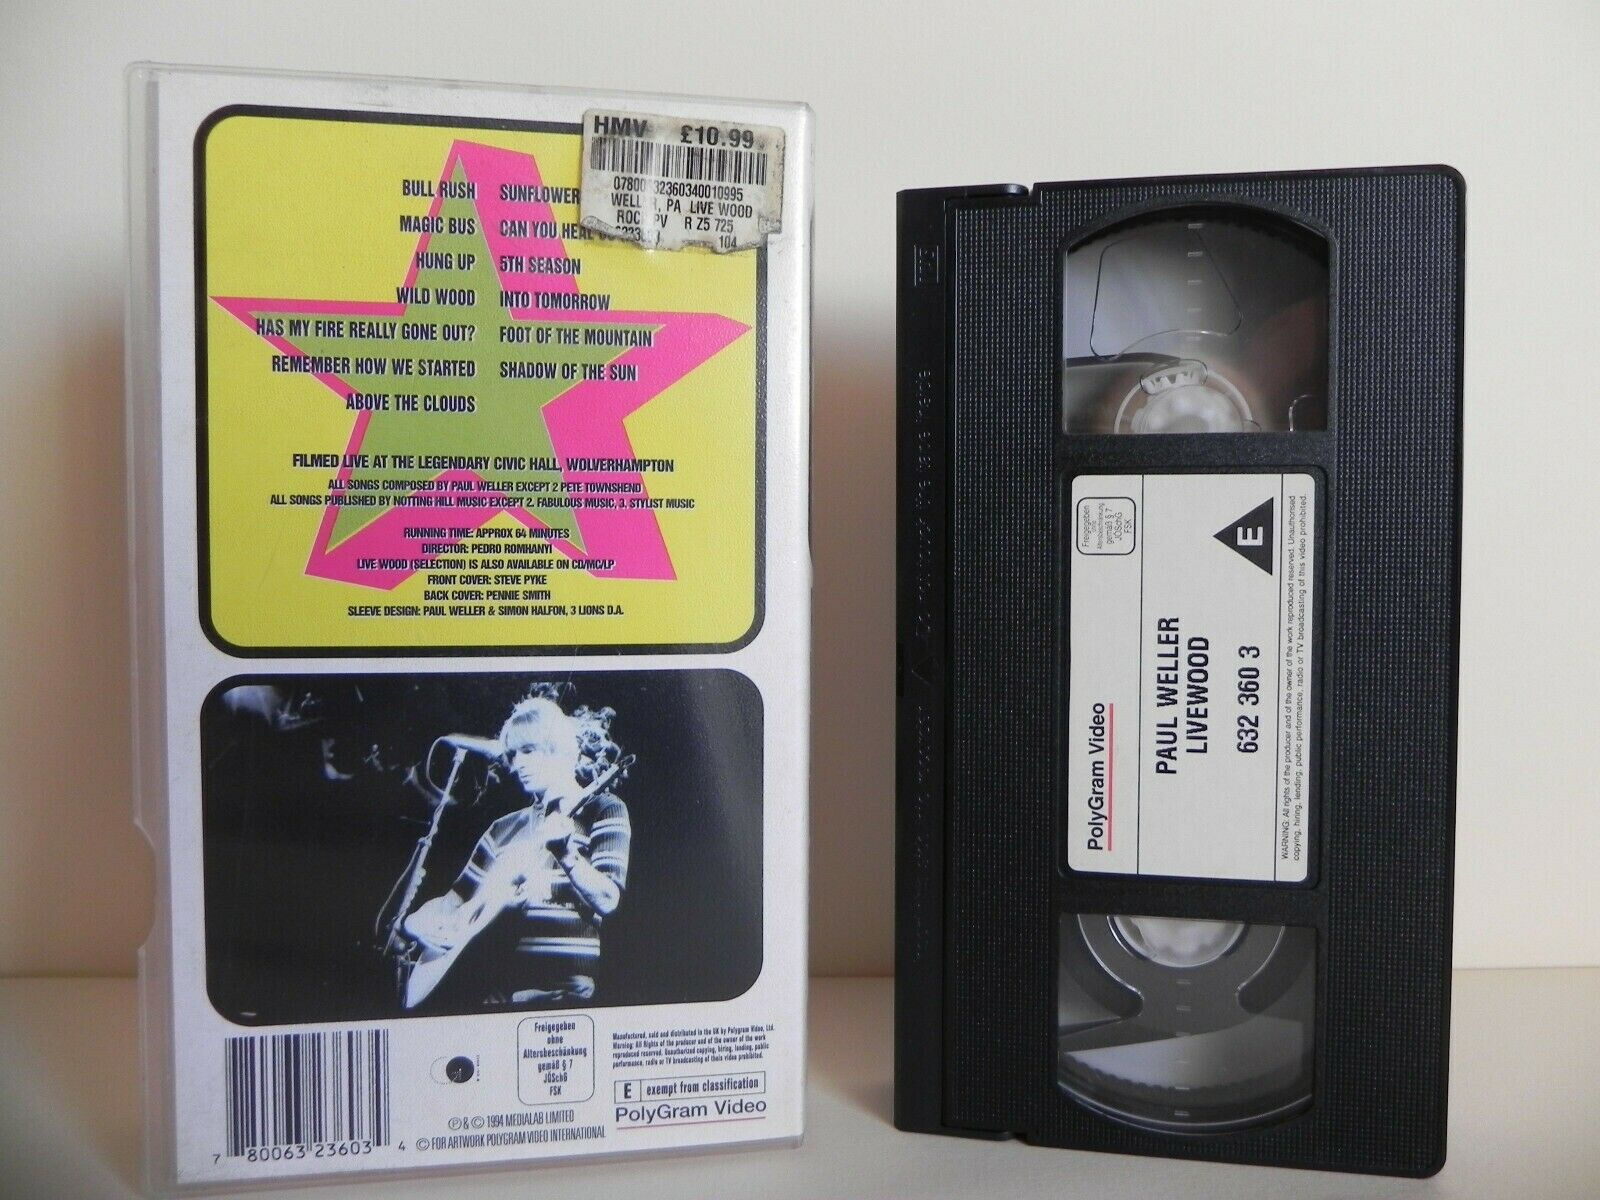 Paul Weller: Live Wood - Civic Hall - Wolverhampton - Bull Rush - Hung Up - VHS